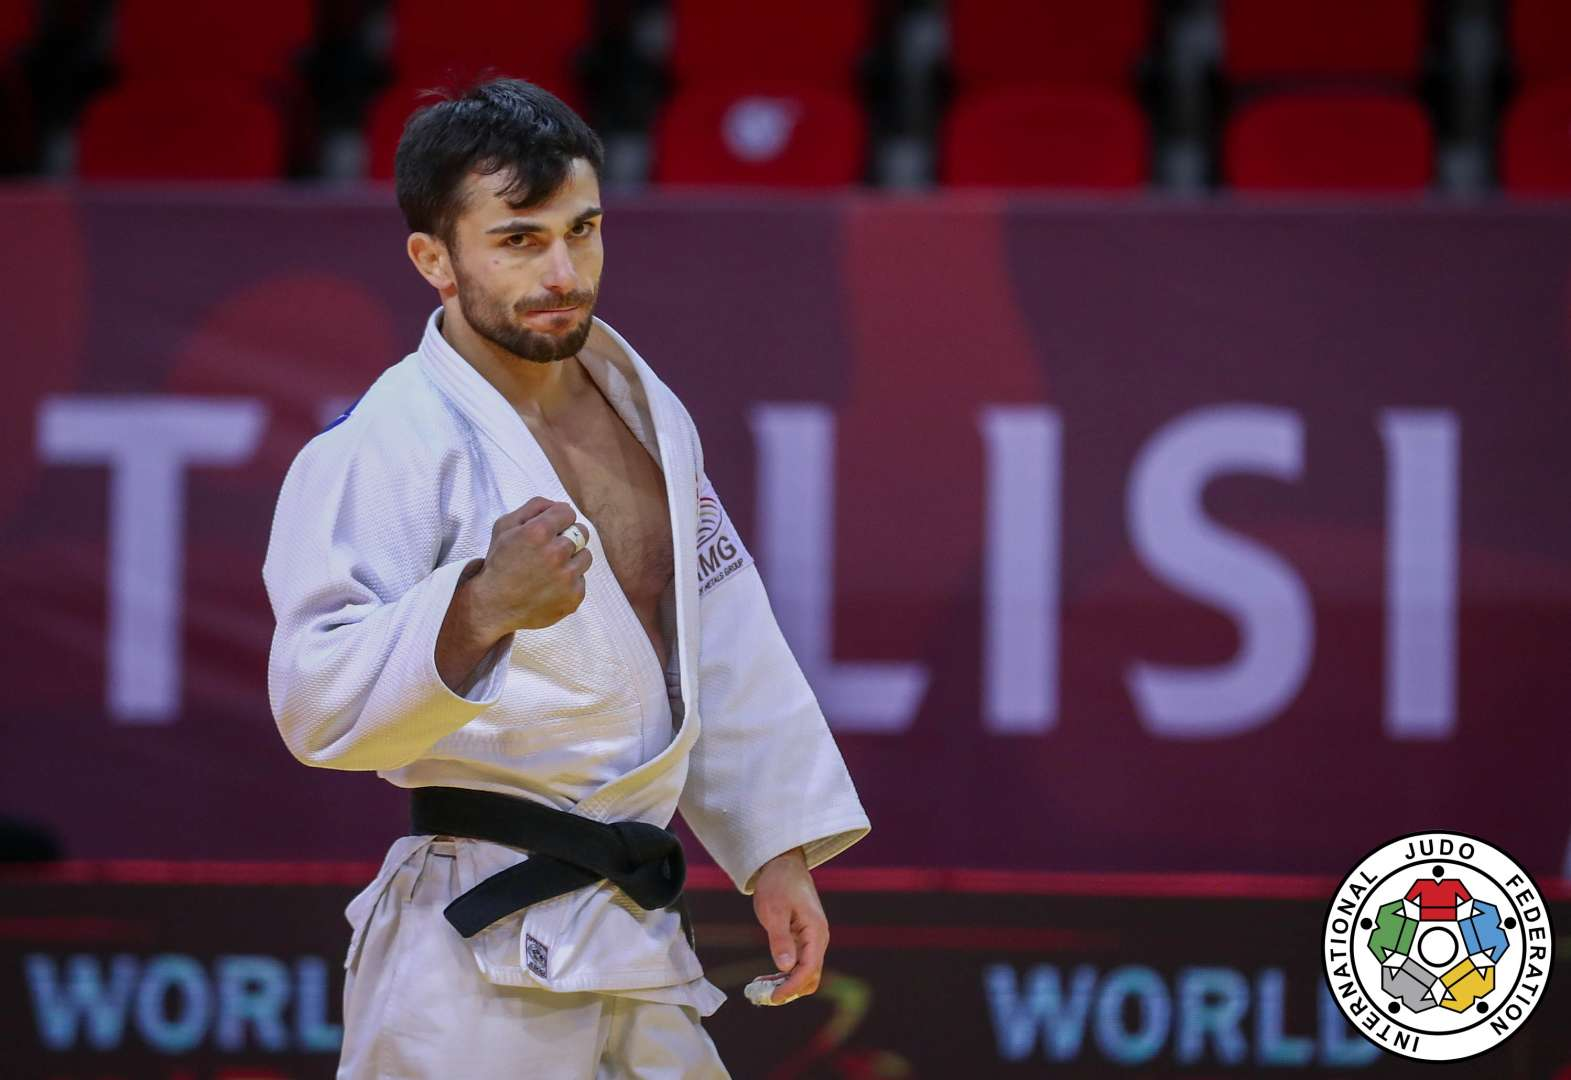 121_20210326_ijf_tbilisi_mm_semi_final_geo_margvelashvili_mda_vieru_66kg